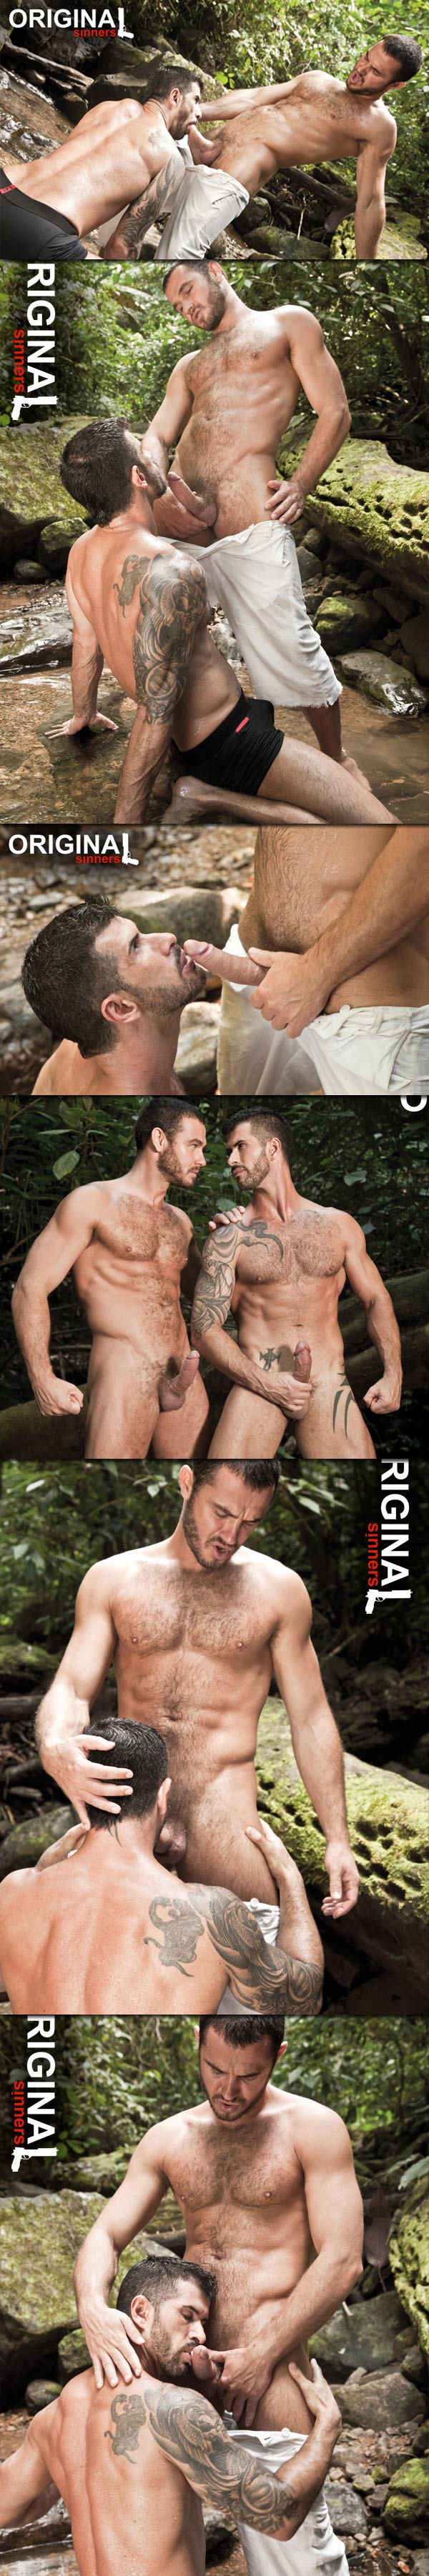 Original Sinners (Adam Killian & Jessy Ares) at LucasEntertainment.com